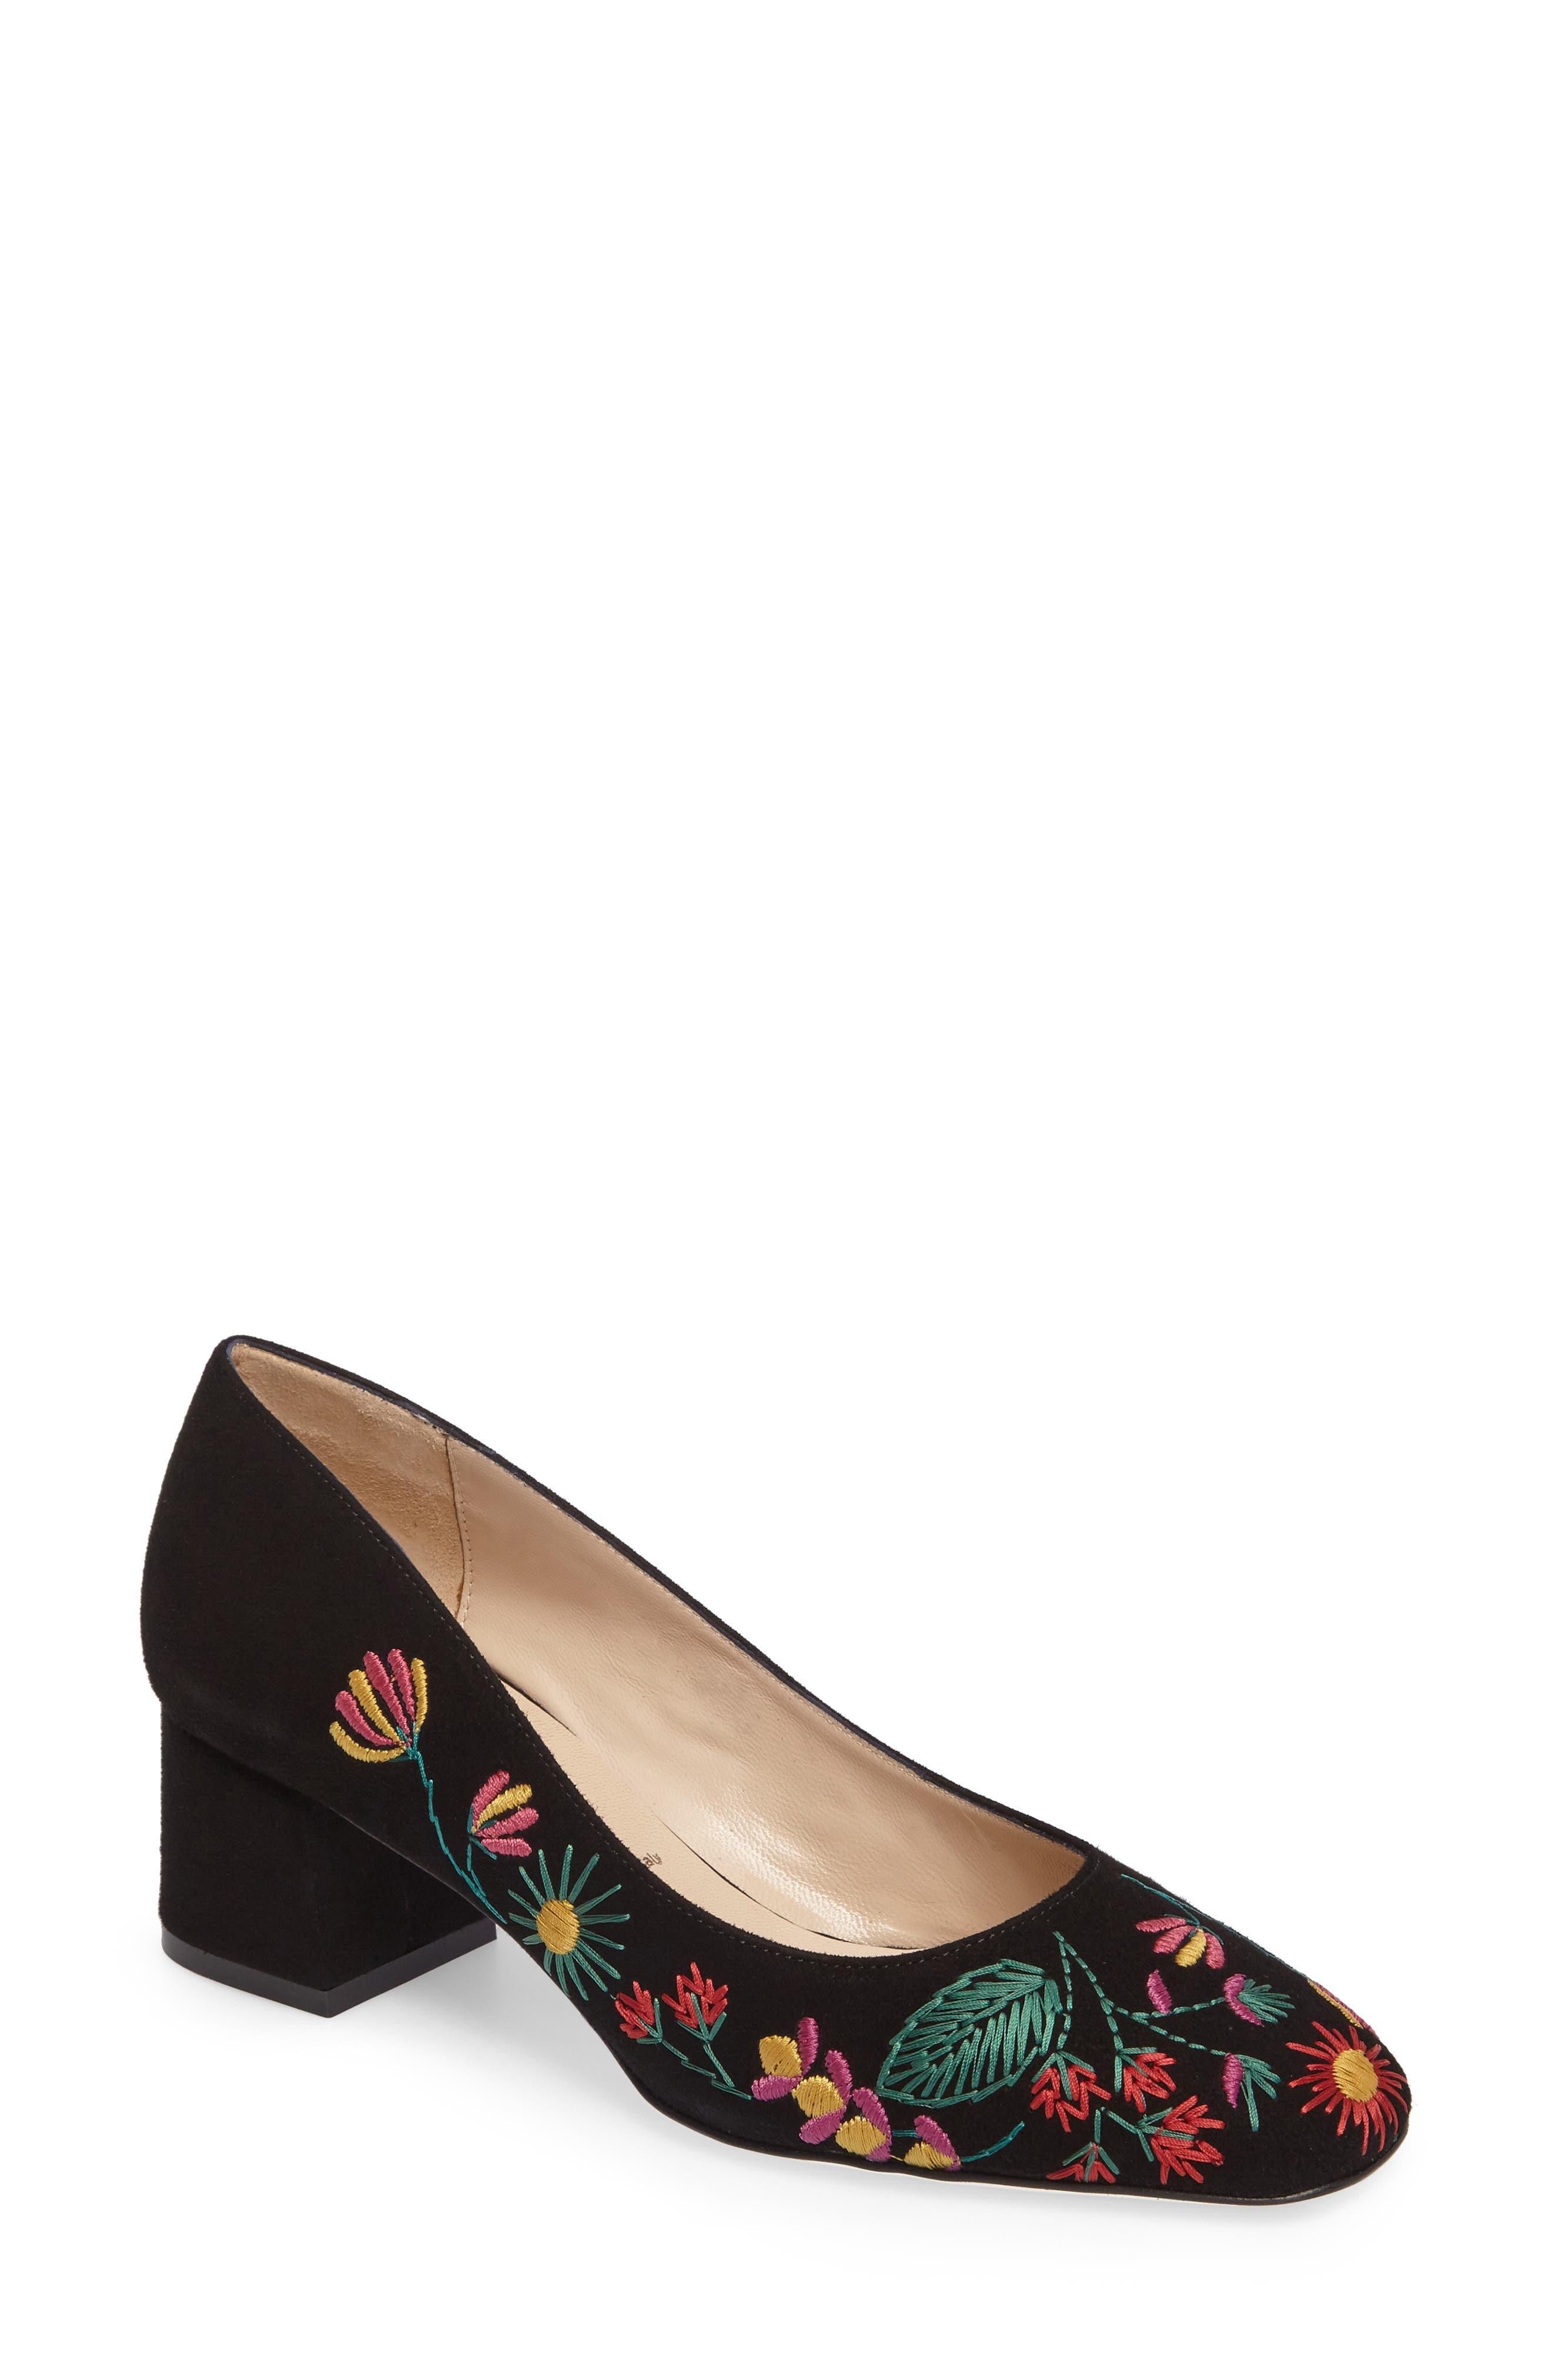 Doreen Embroidered Water Resistant Pump,                         Main,                         color, Black Multi Fabric